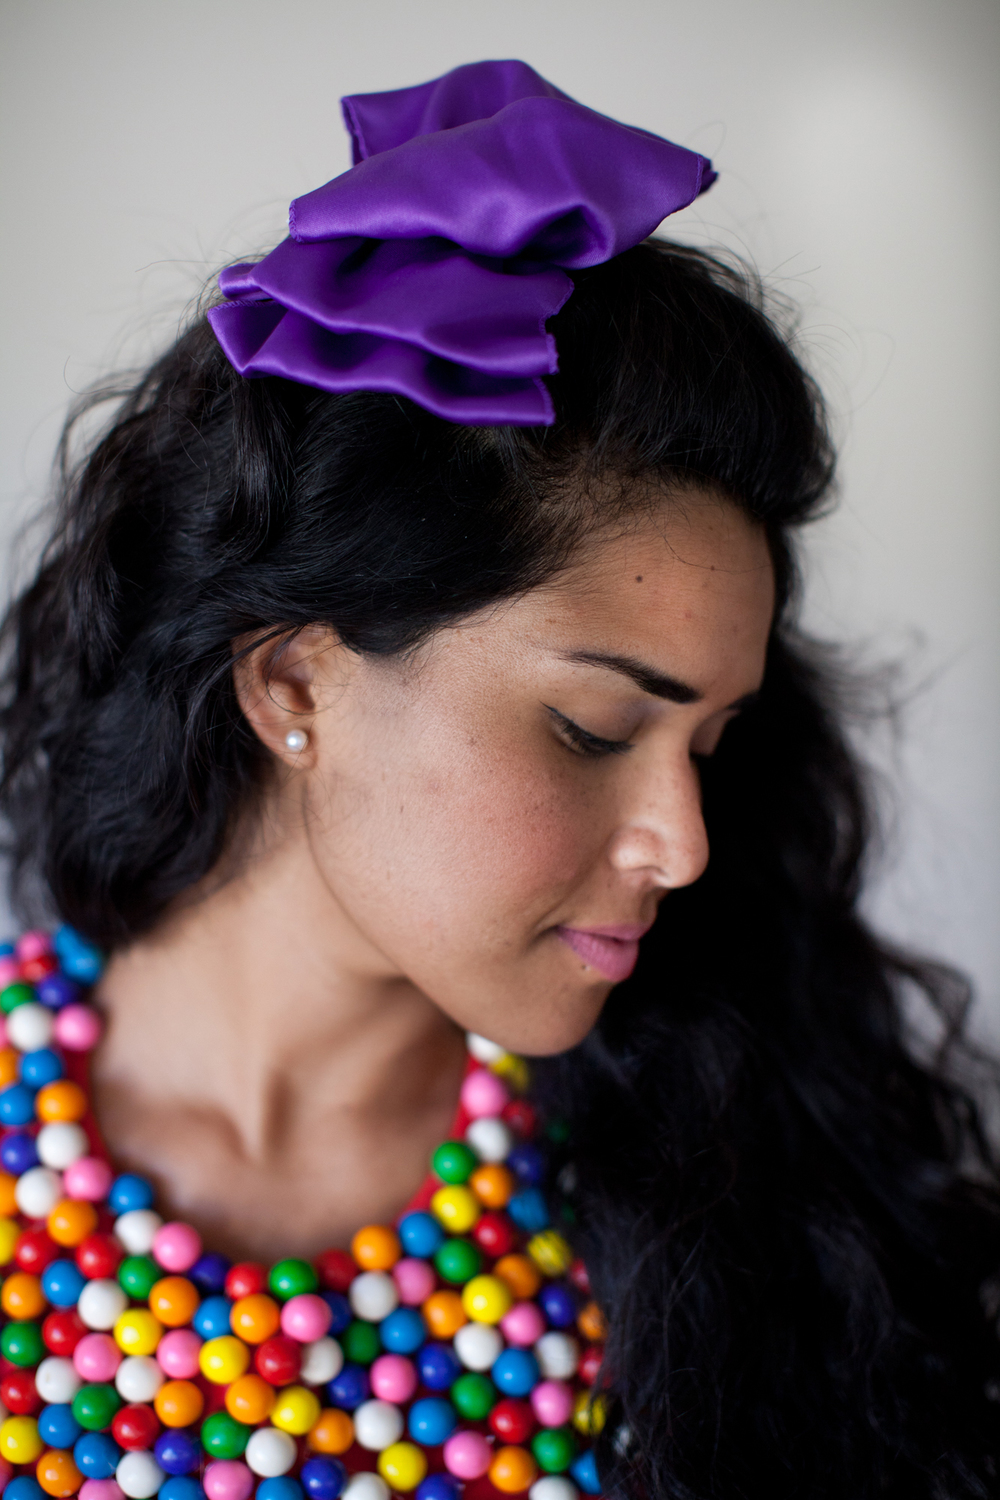 Add some color to your hair! We liked using a colorful bow avaliable at Rax Clothing